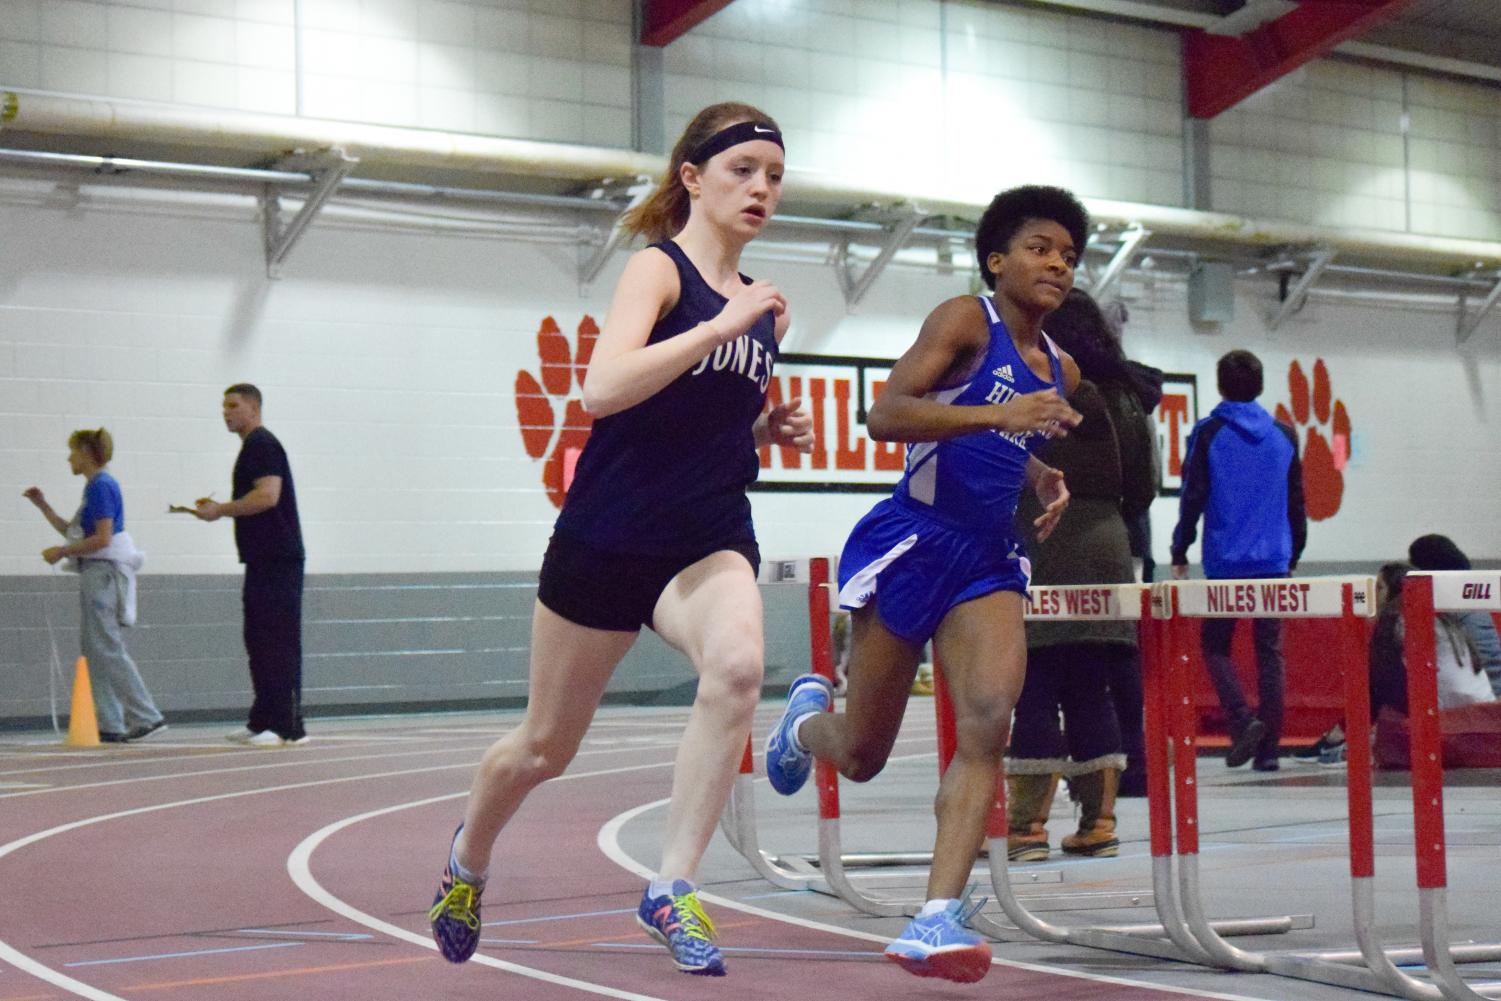 Thea Reaves competes in her first 400m as a varsity runner.